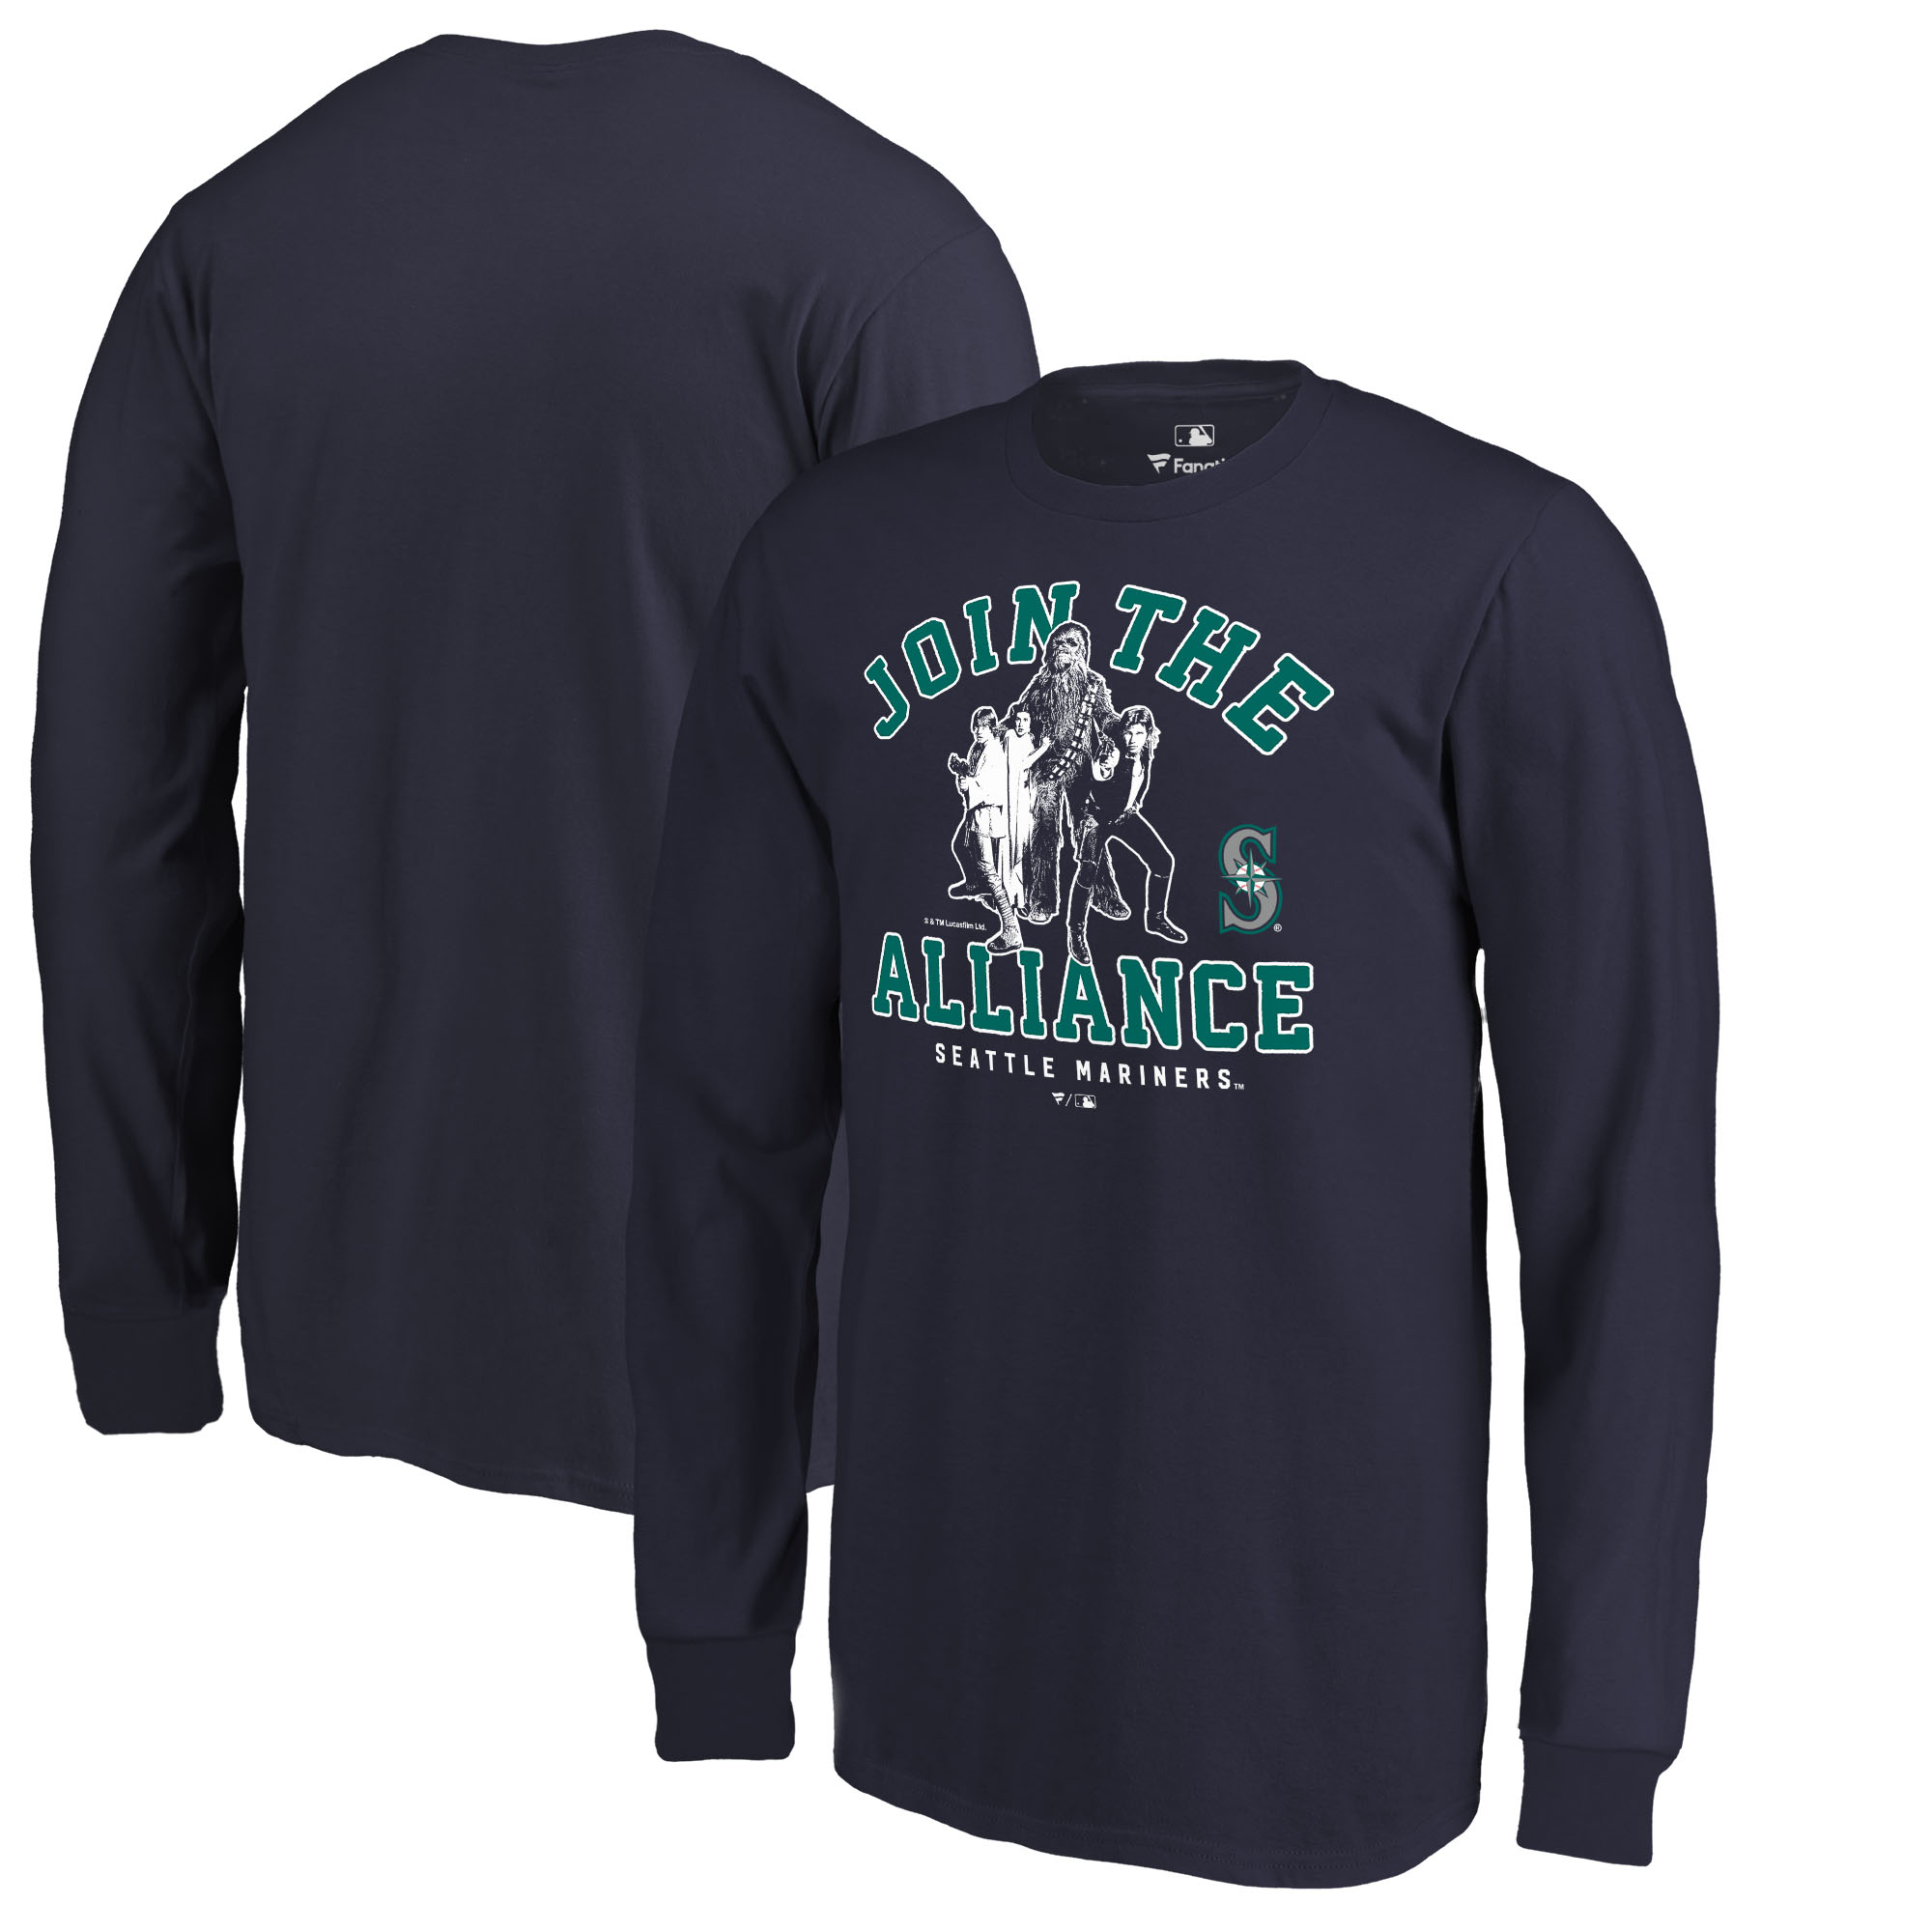 Seattle Mariners Fanatics Branded Youth MLB Star Wars Join The Alliance Long Sleeve T-Shirt - Navy